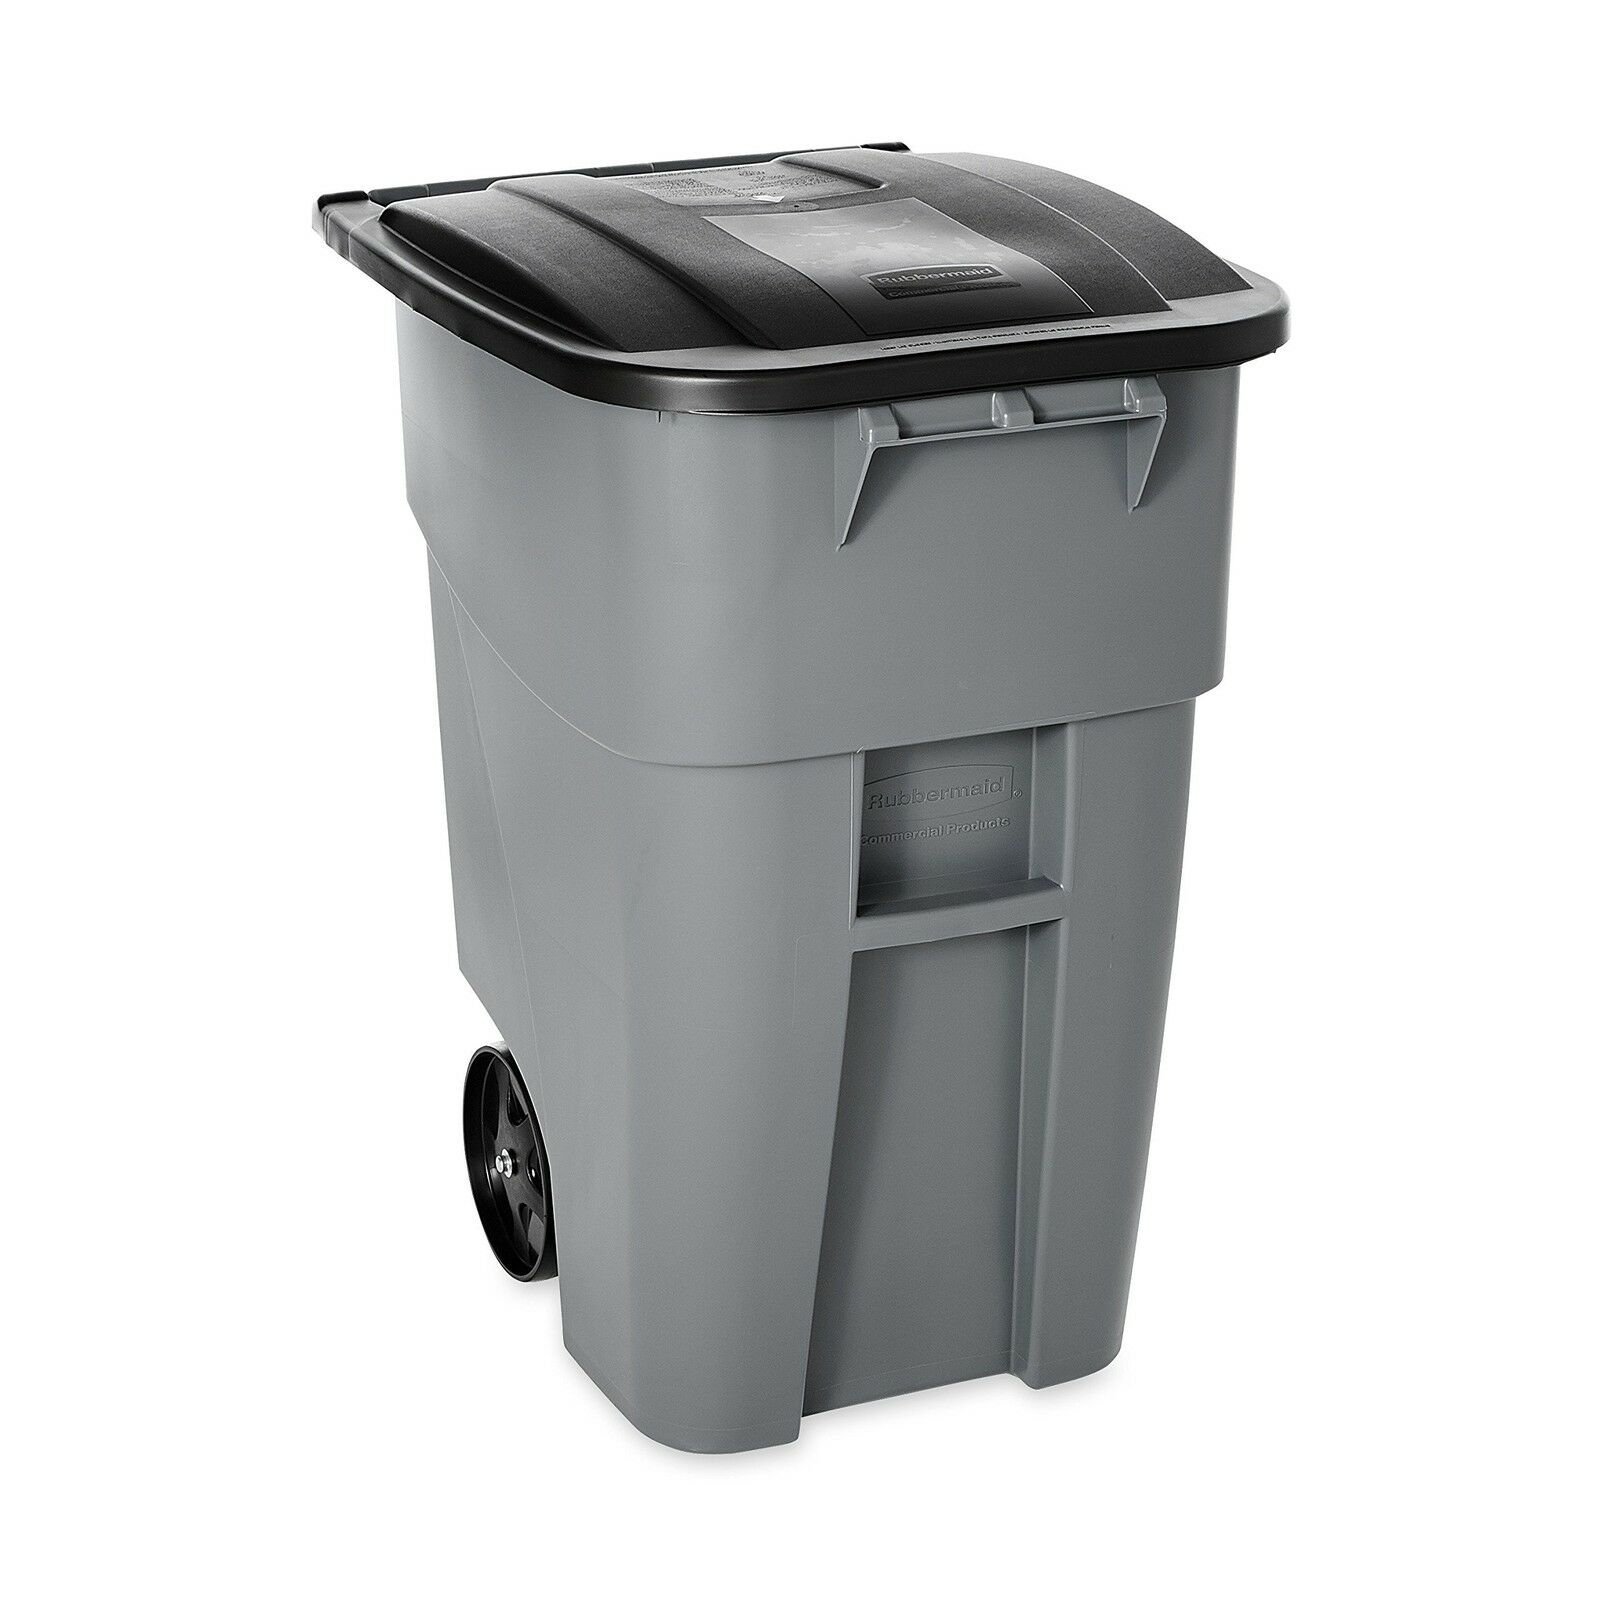 Rubbermaid Commercial BRUTE Recycler Rollout Trash Can with